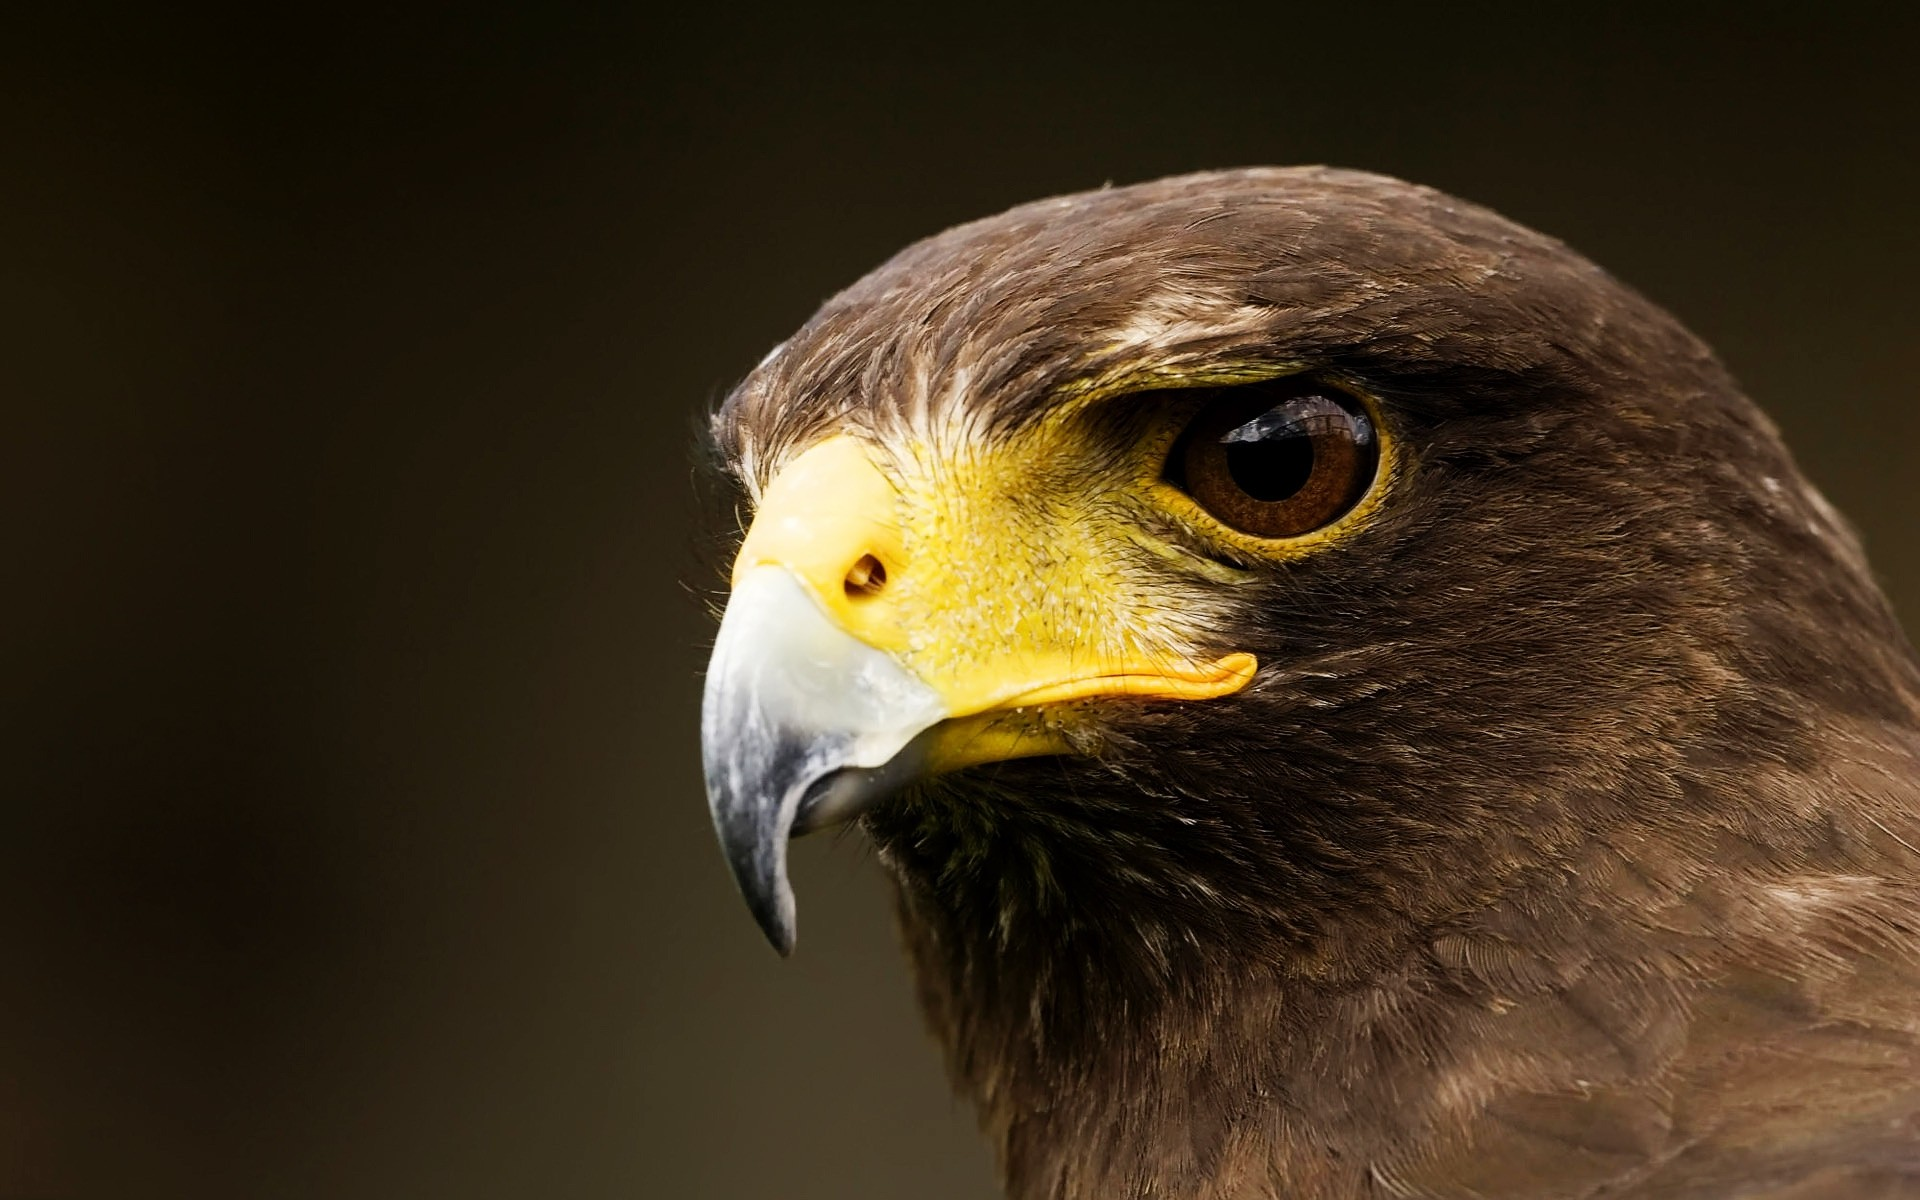 eagle bird raptor wildlife prey hawk beak falconry bald eagle animal nature eye falcon feather flight